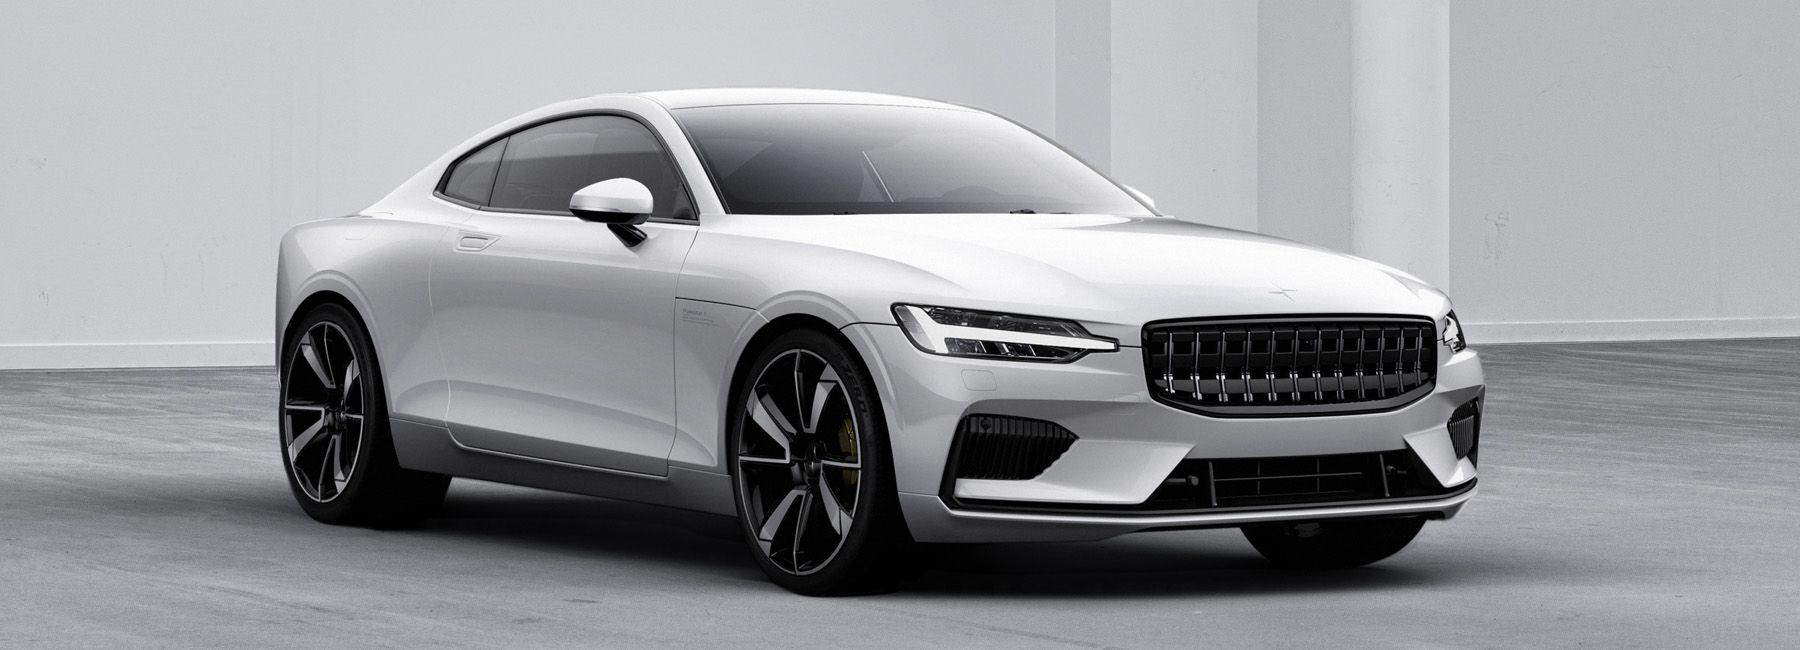 Polestar One Electric Car Is Volvo S Answer To High Performance Ev Volvo Cars Volvo Electric Cars